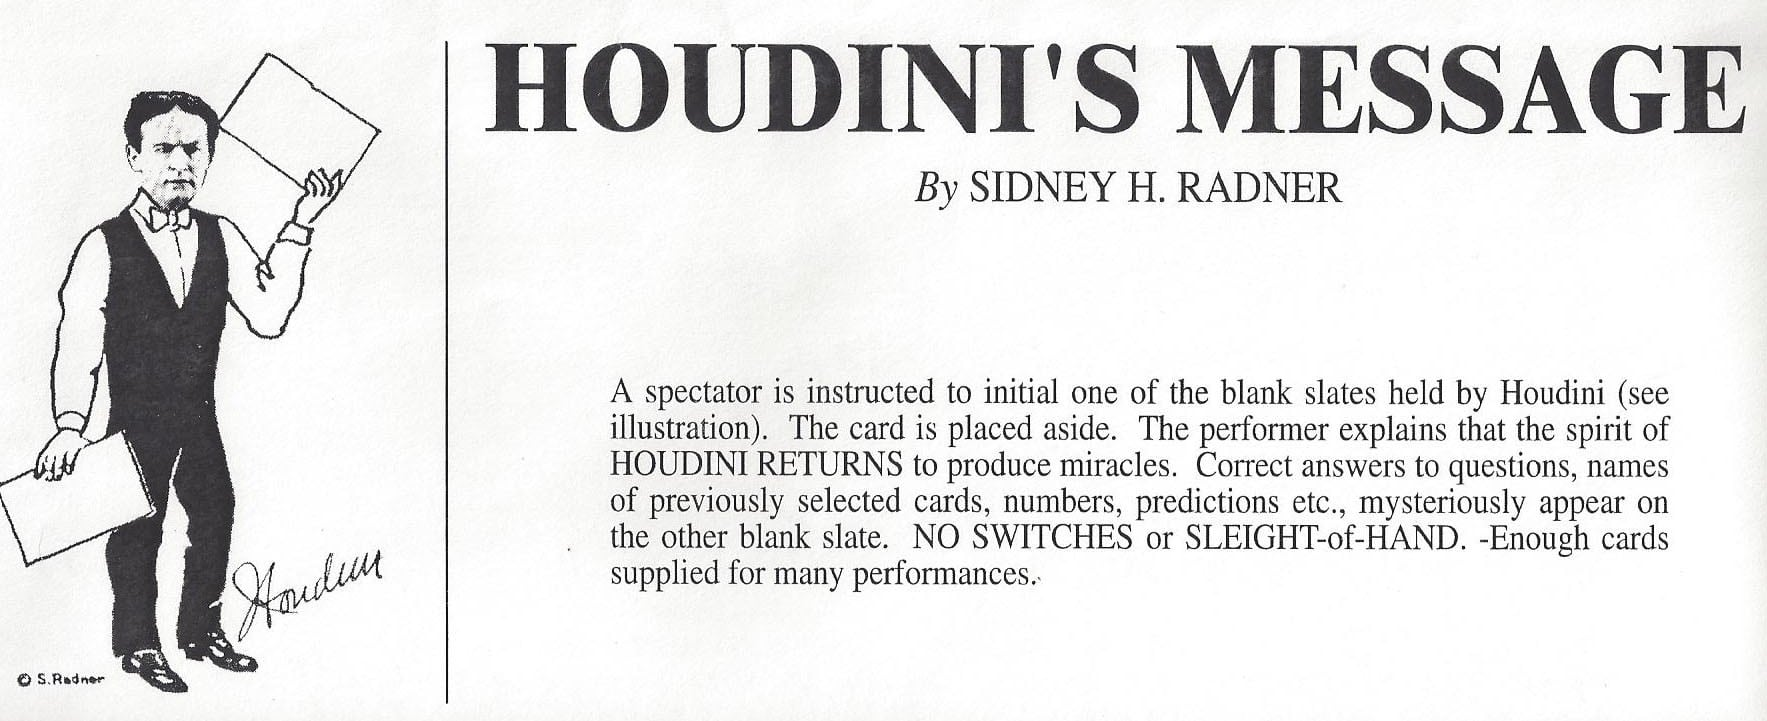 Houdini's Message by Sidney H. Radner